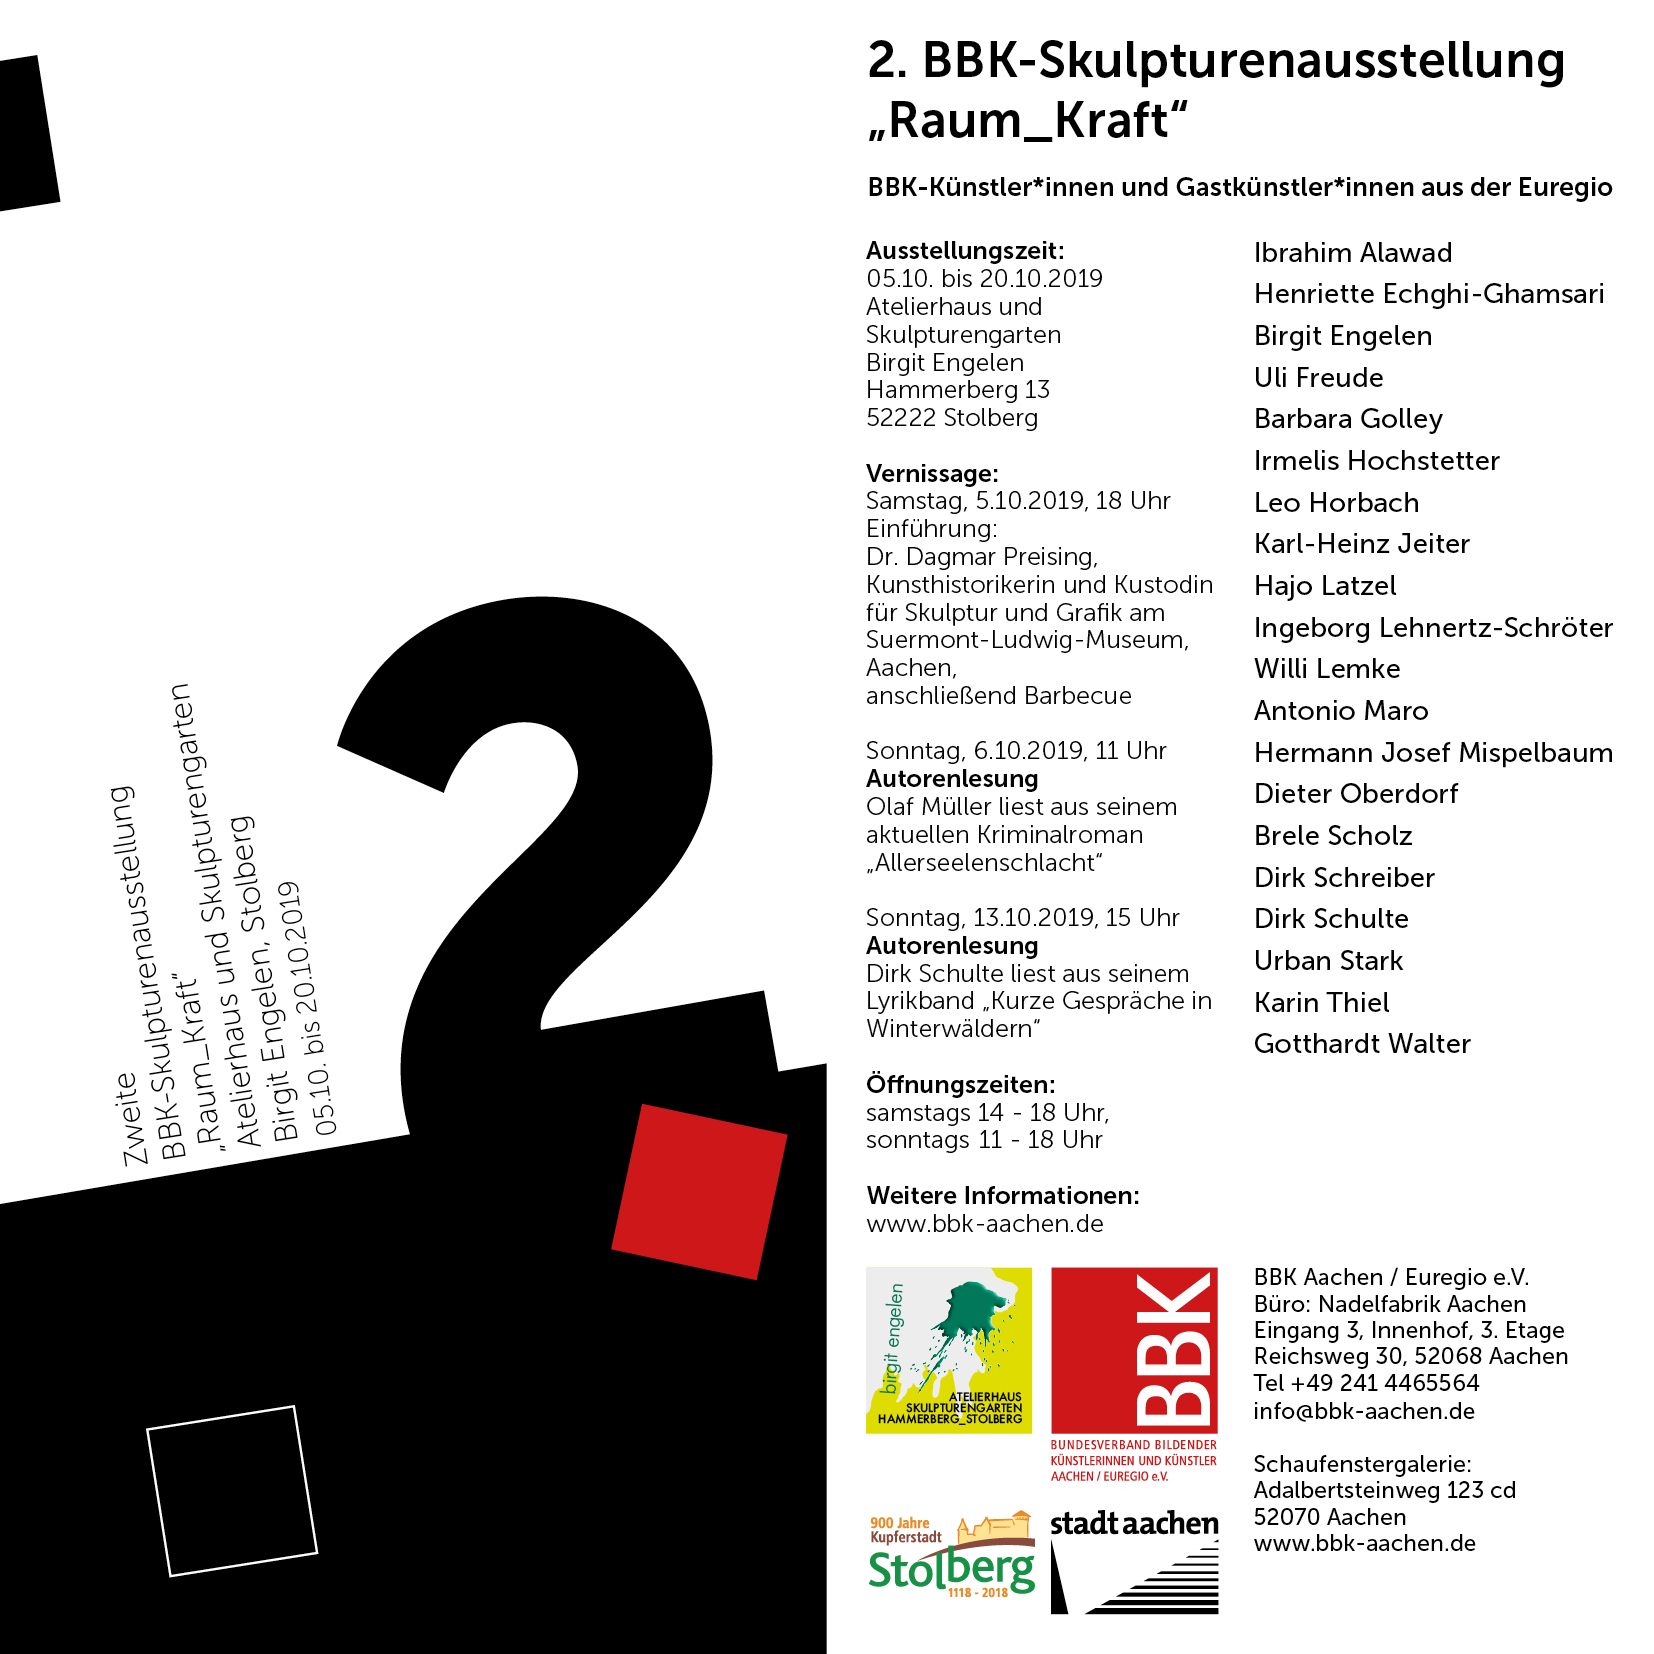 2. Skulpturenausstellung 2019